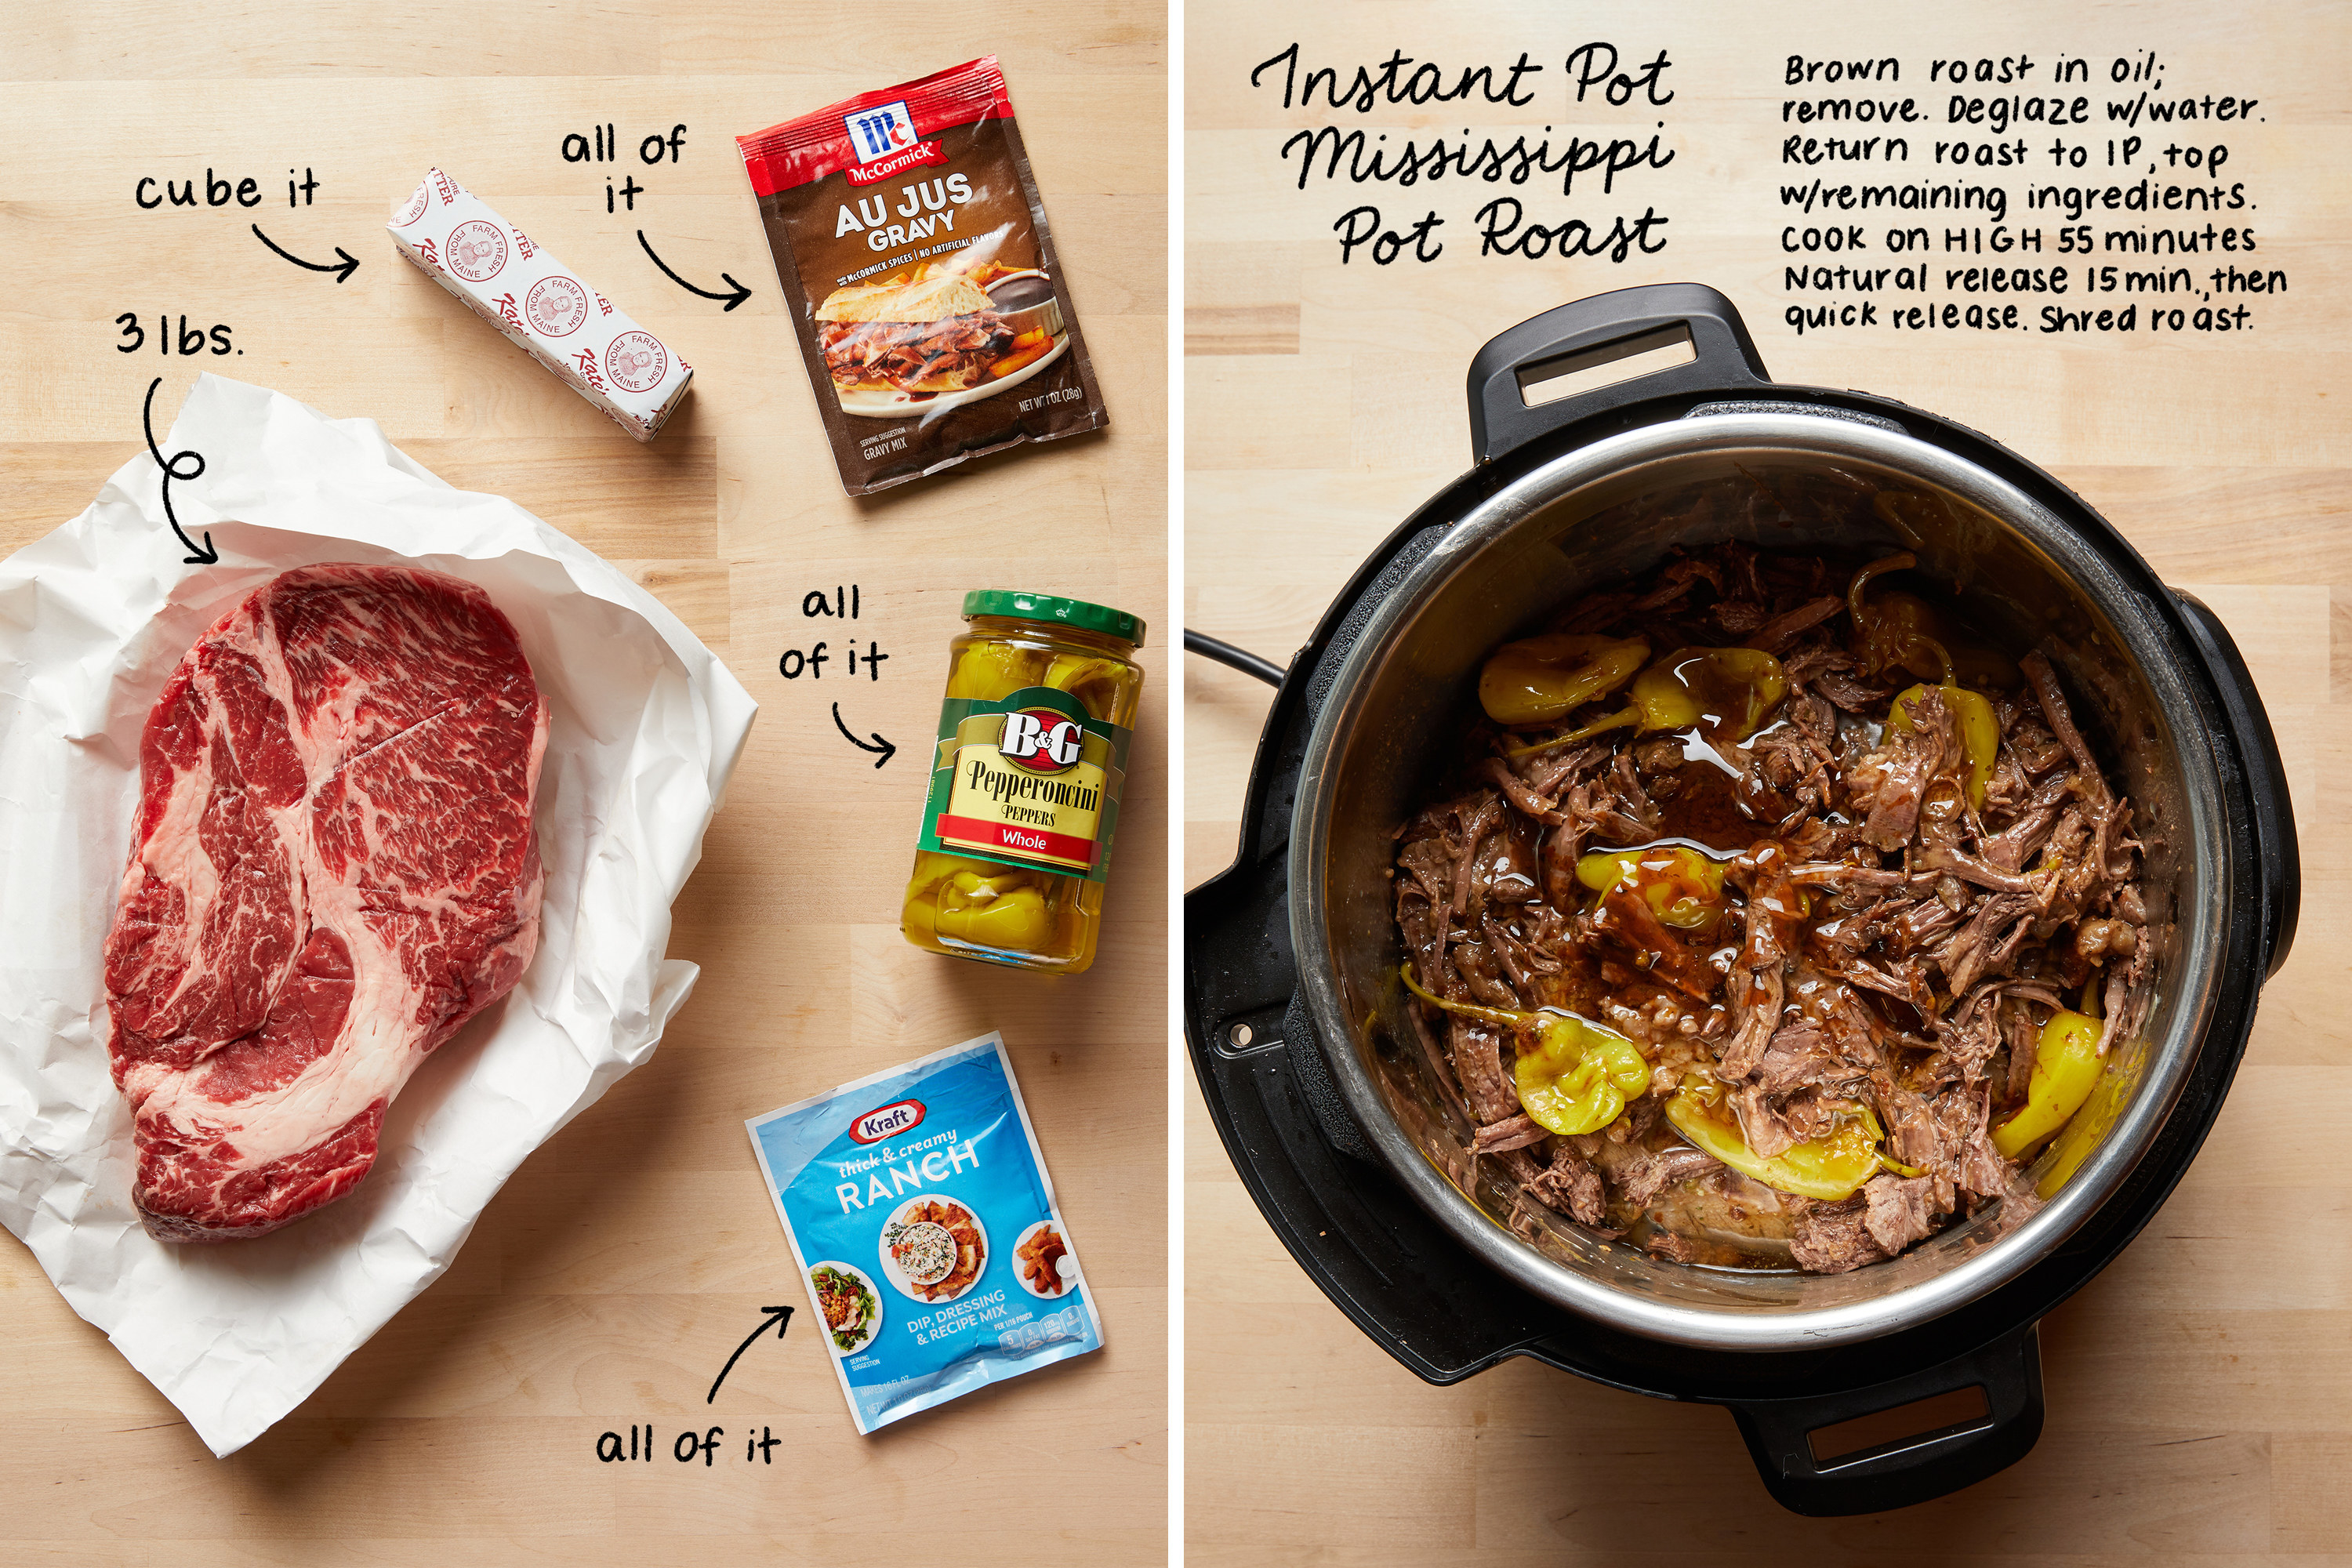 Instant Pot Mississippi pot roast, before and after it's cooked